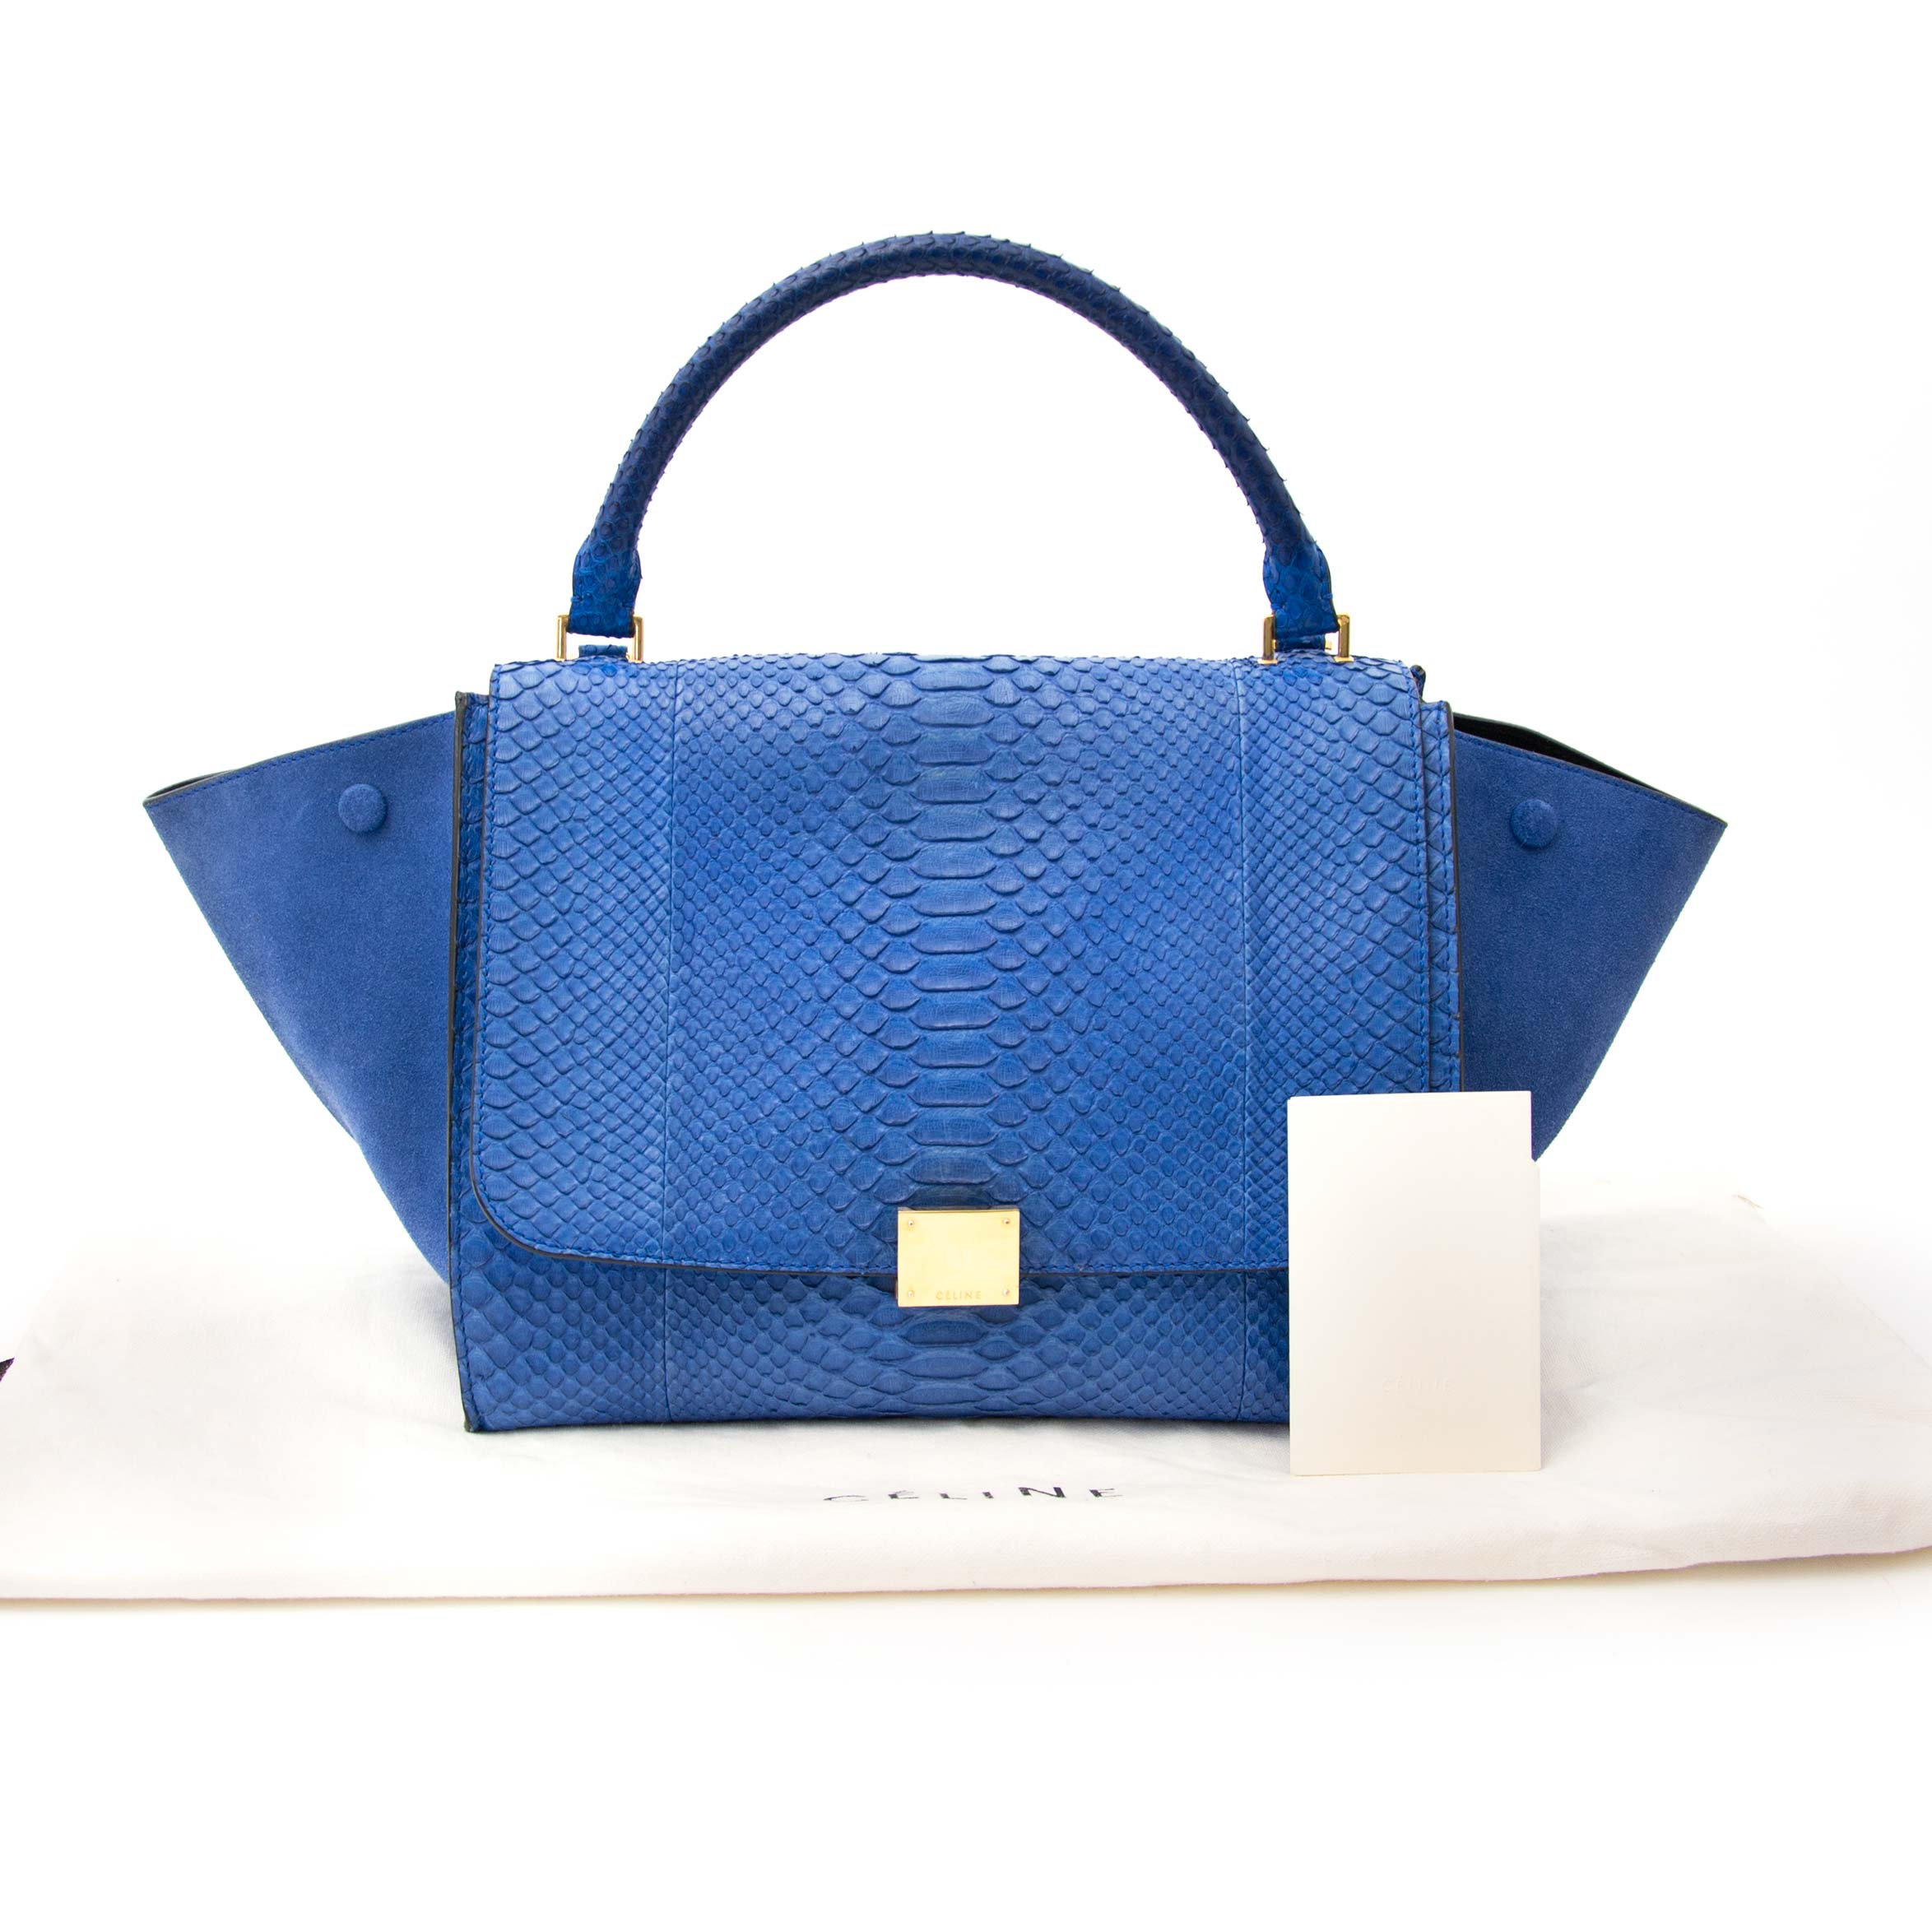 889bfd0380 Labellov Top Handle - Bags ○ Buy and Sell Authentic Luxury